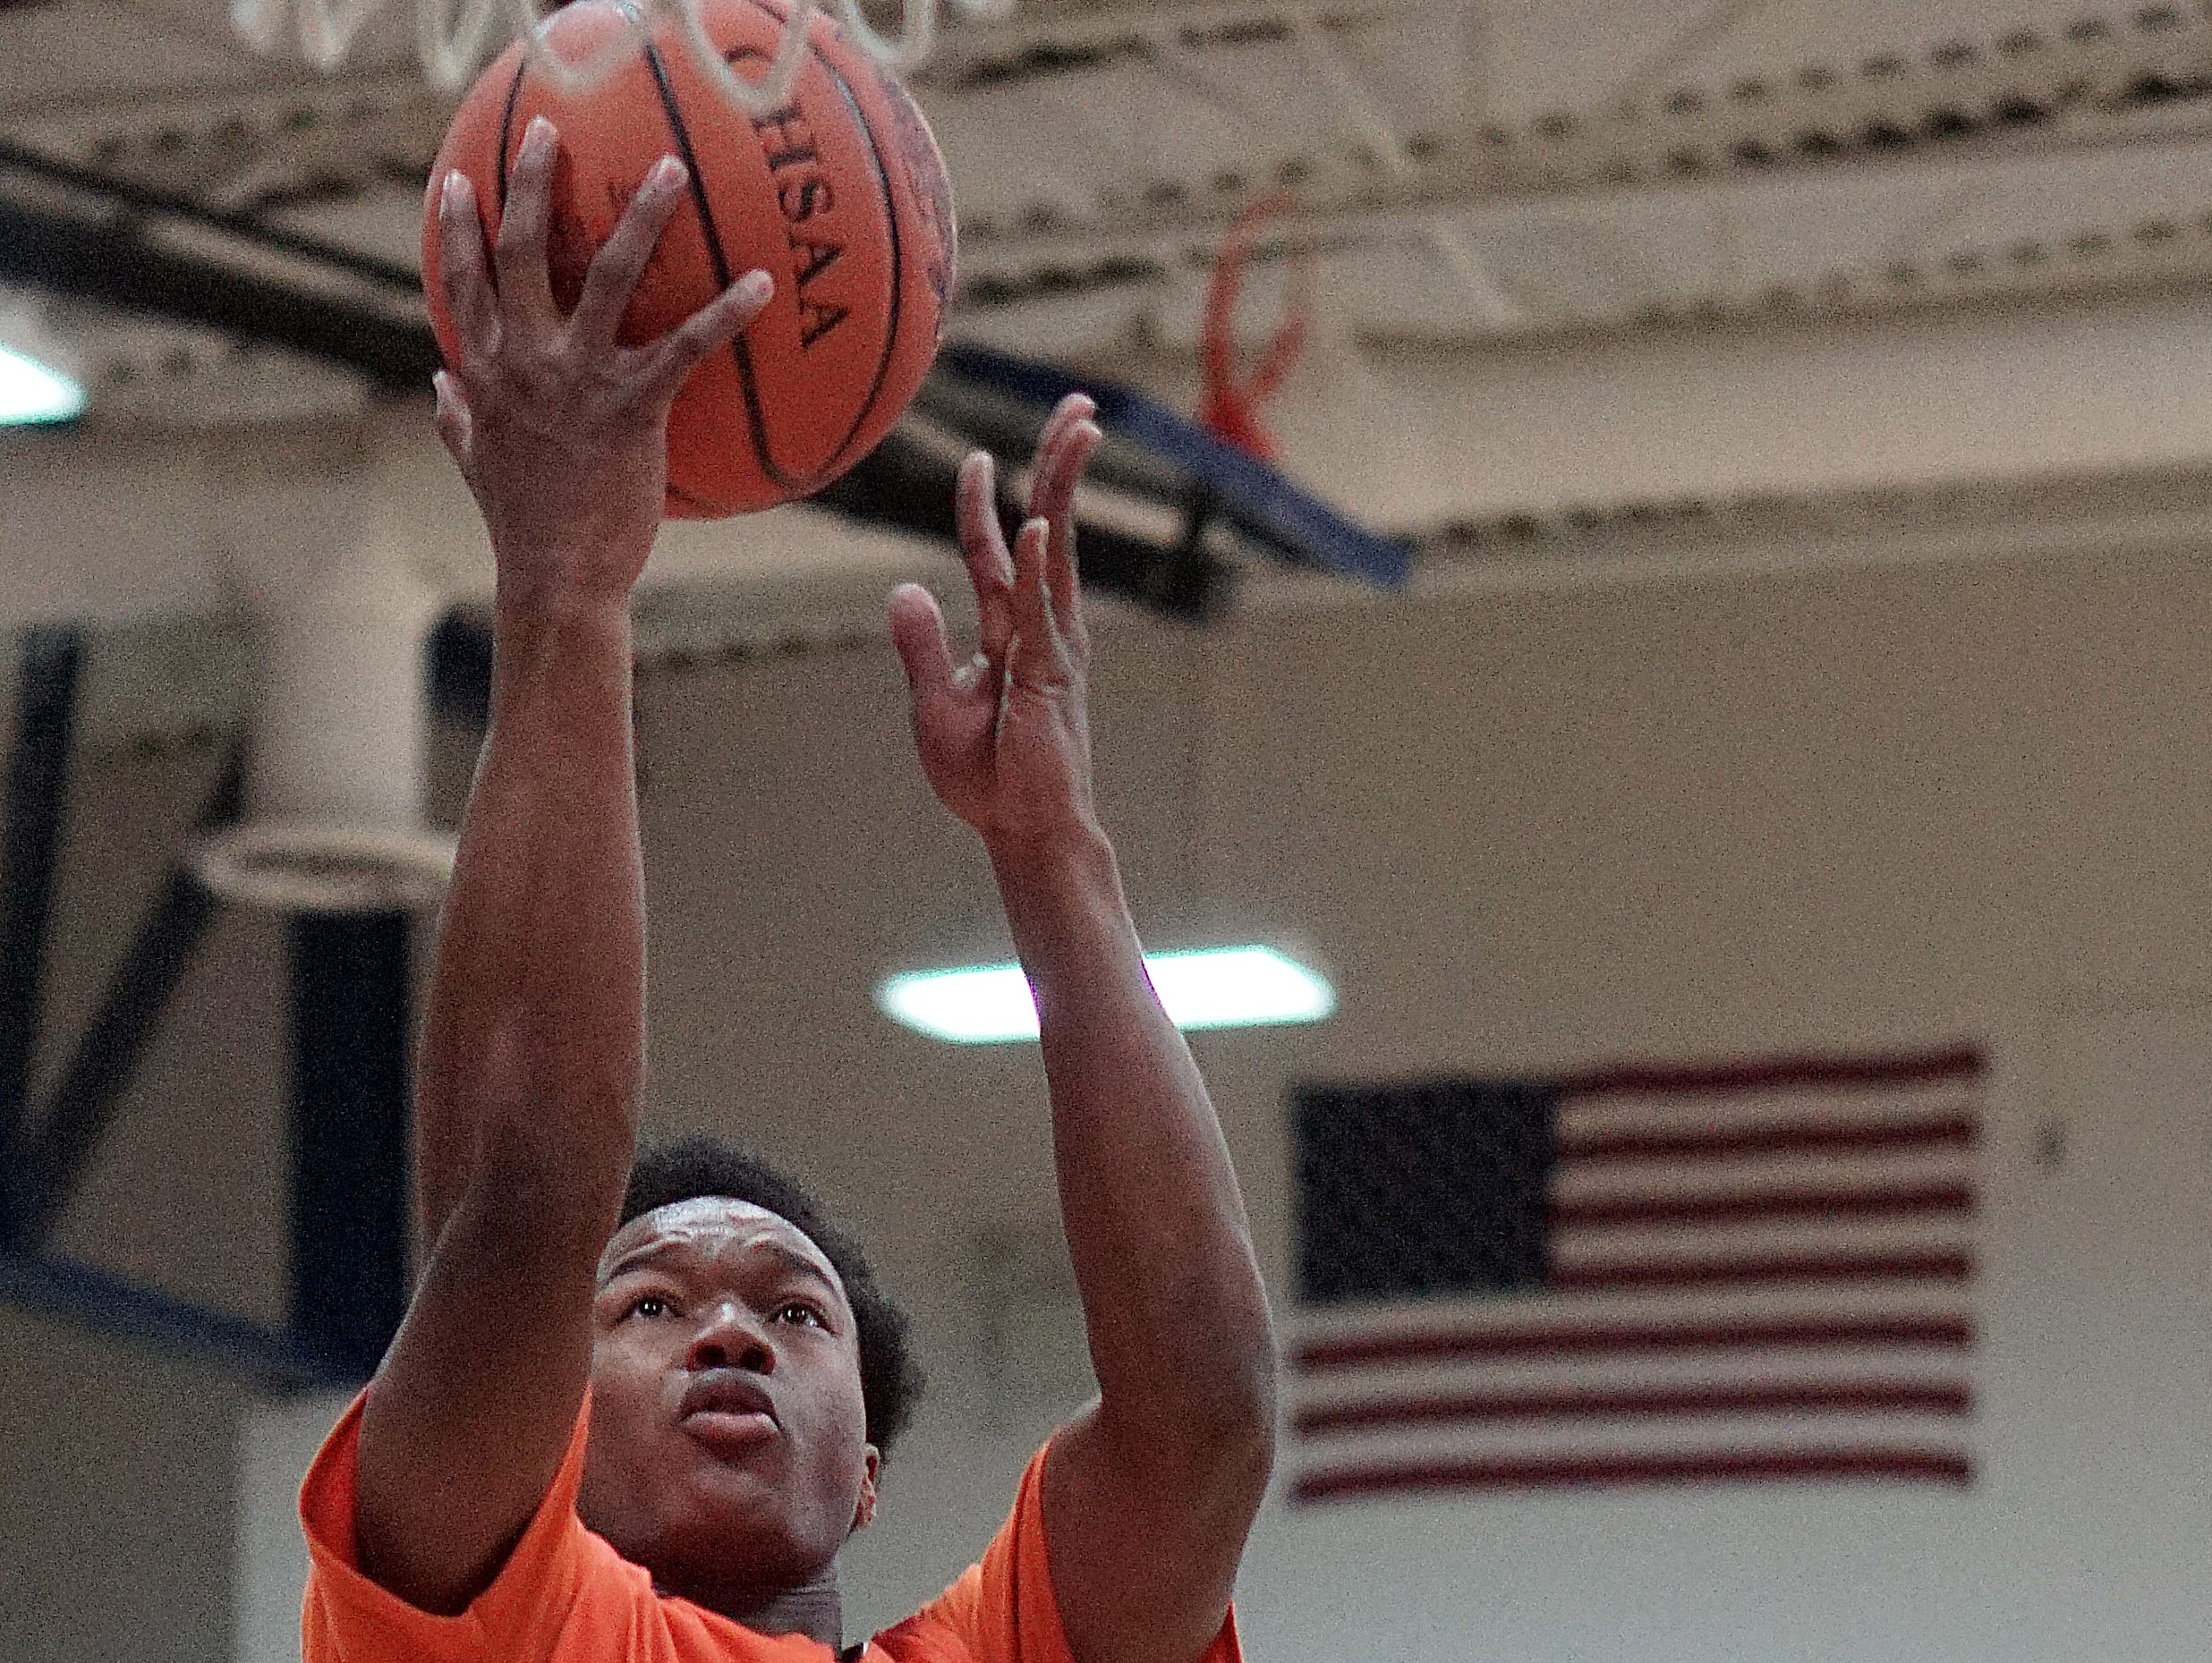 Mansfield Senior's Antonio Weatherspoon goes for a layup during their game Friday night against Ontario.